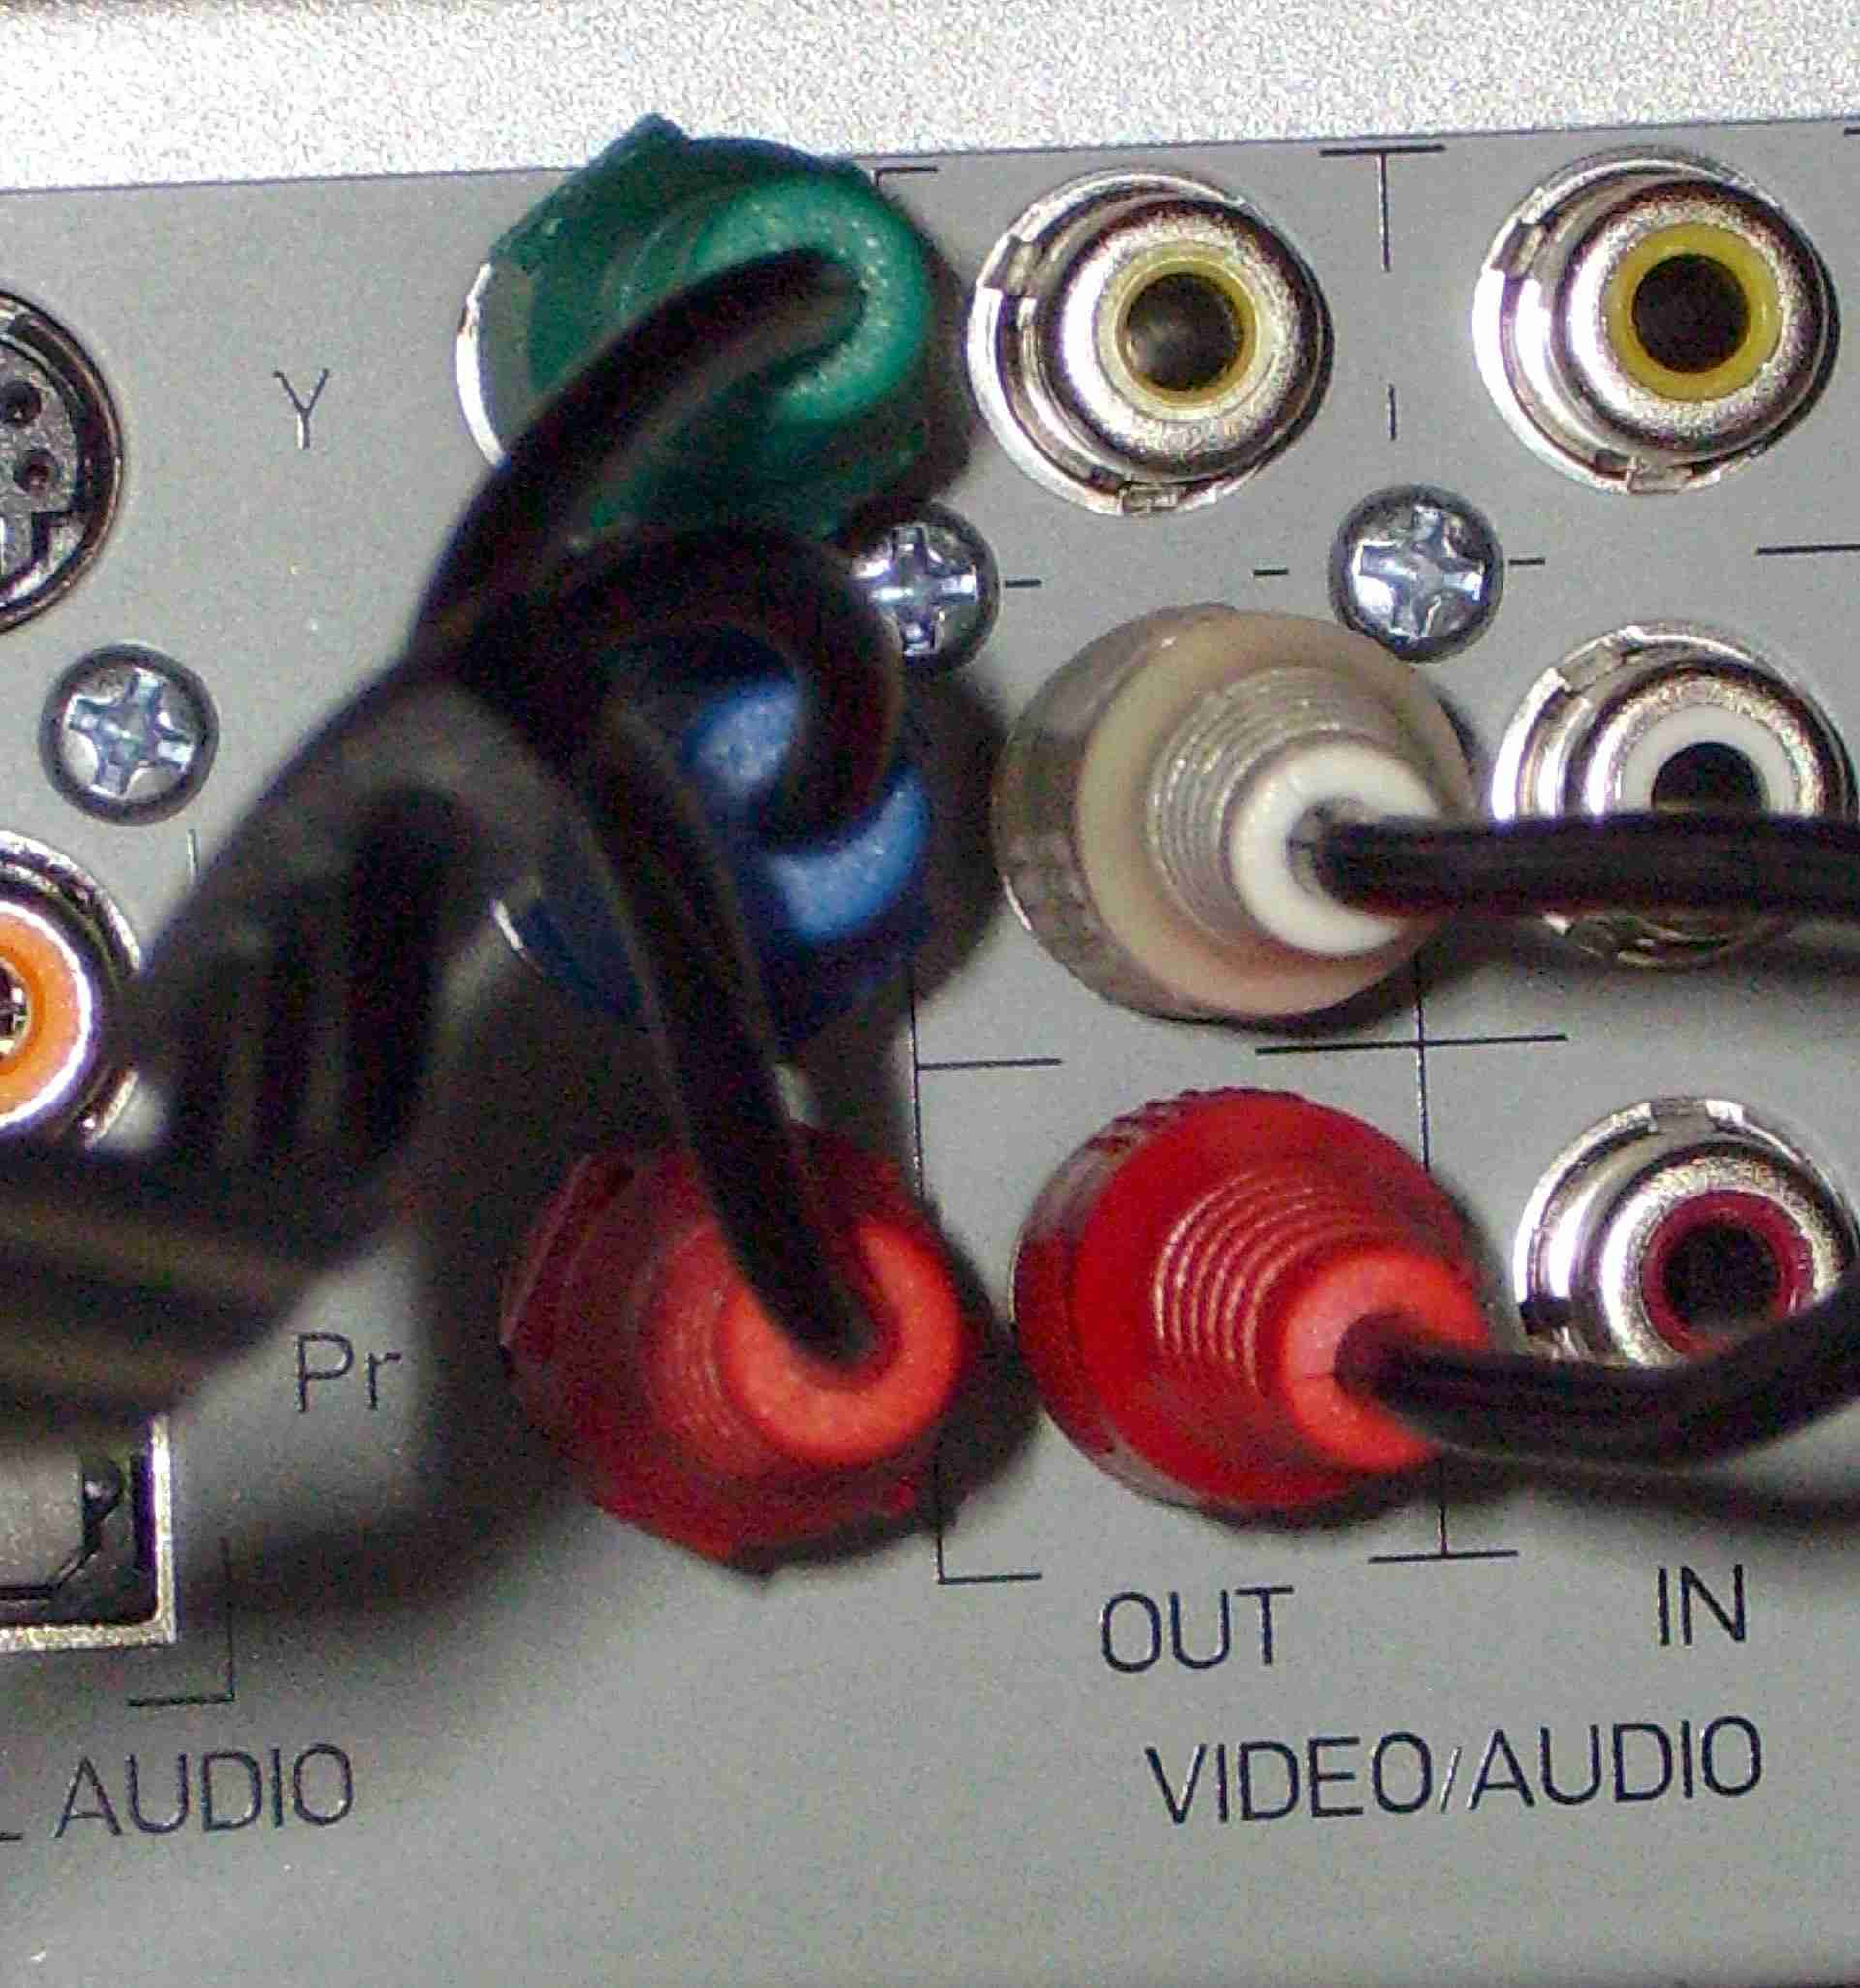 Carefully plug your cables in